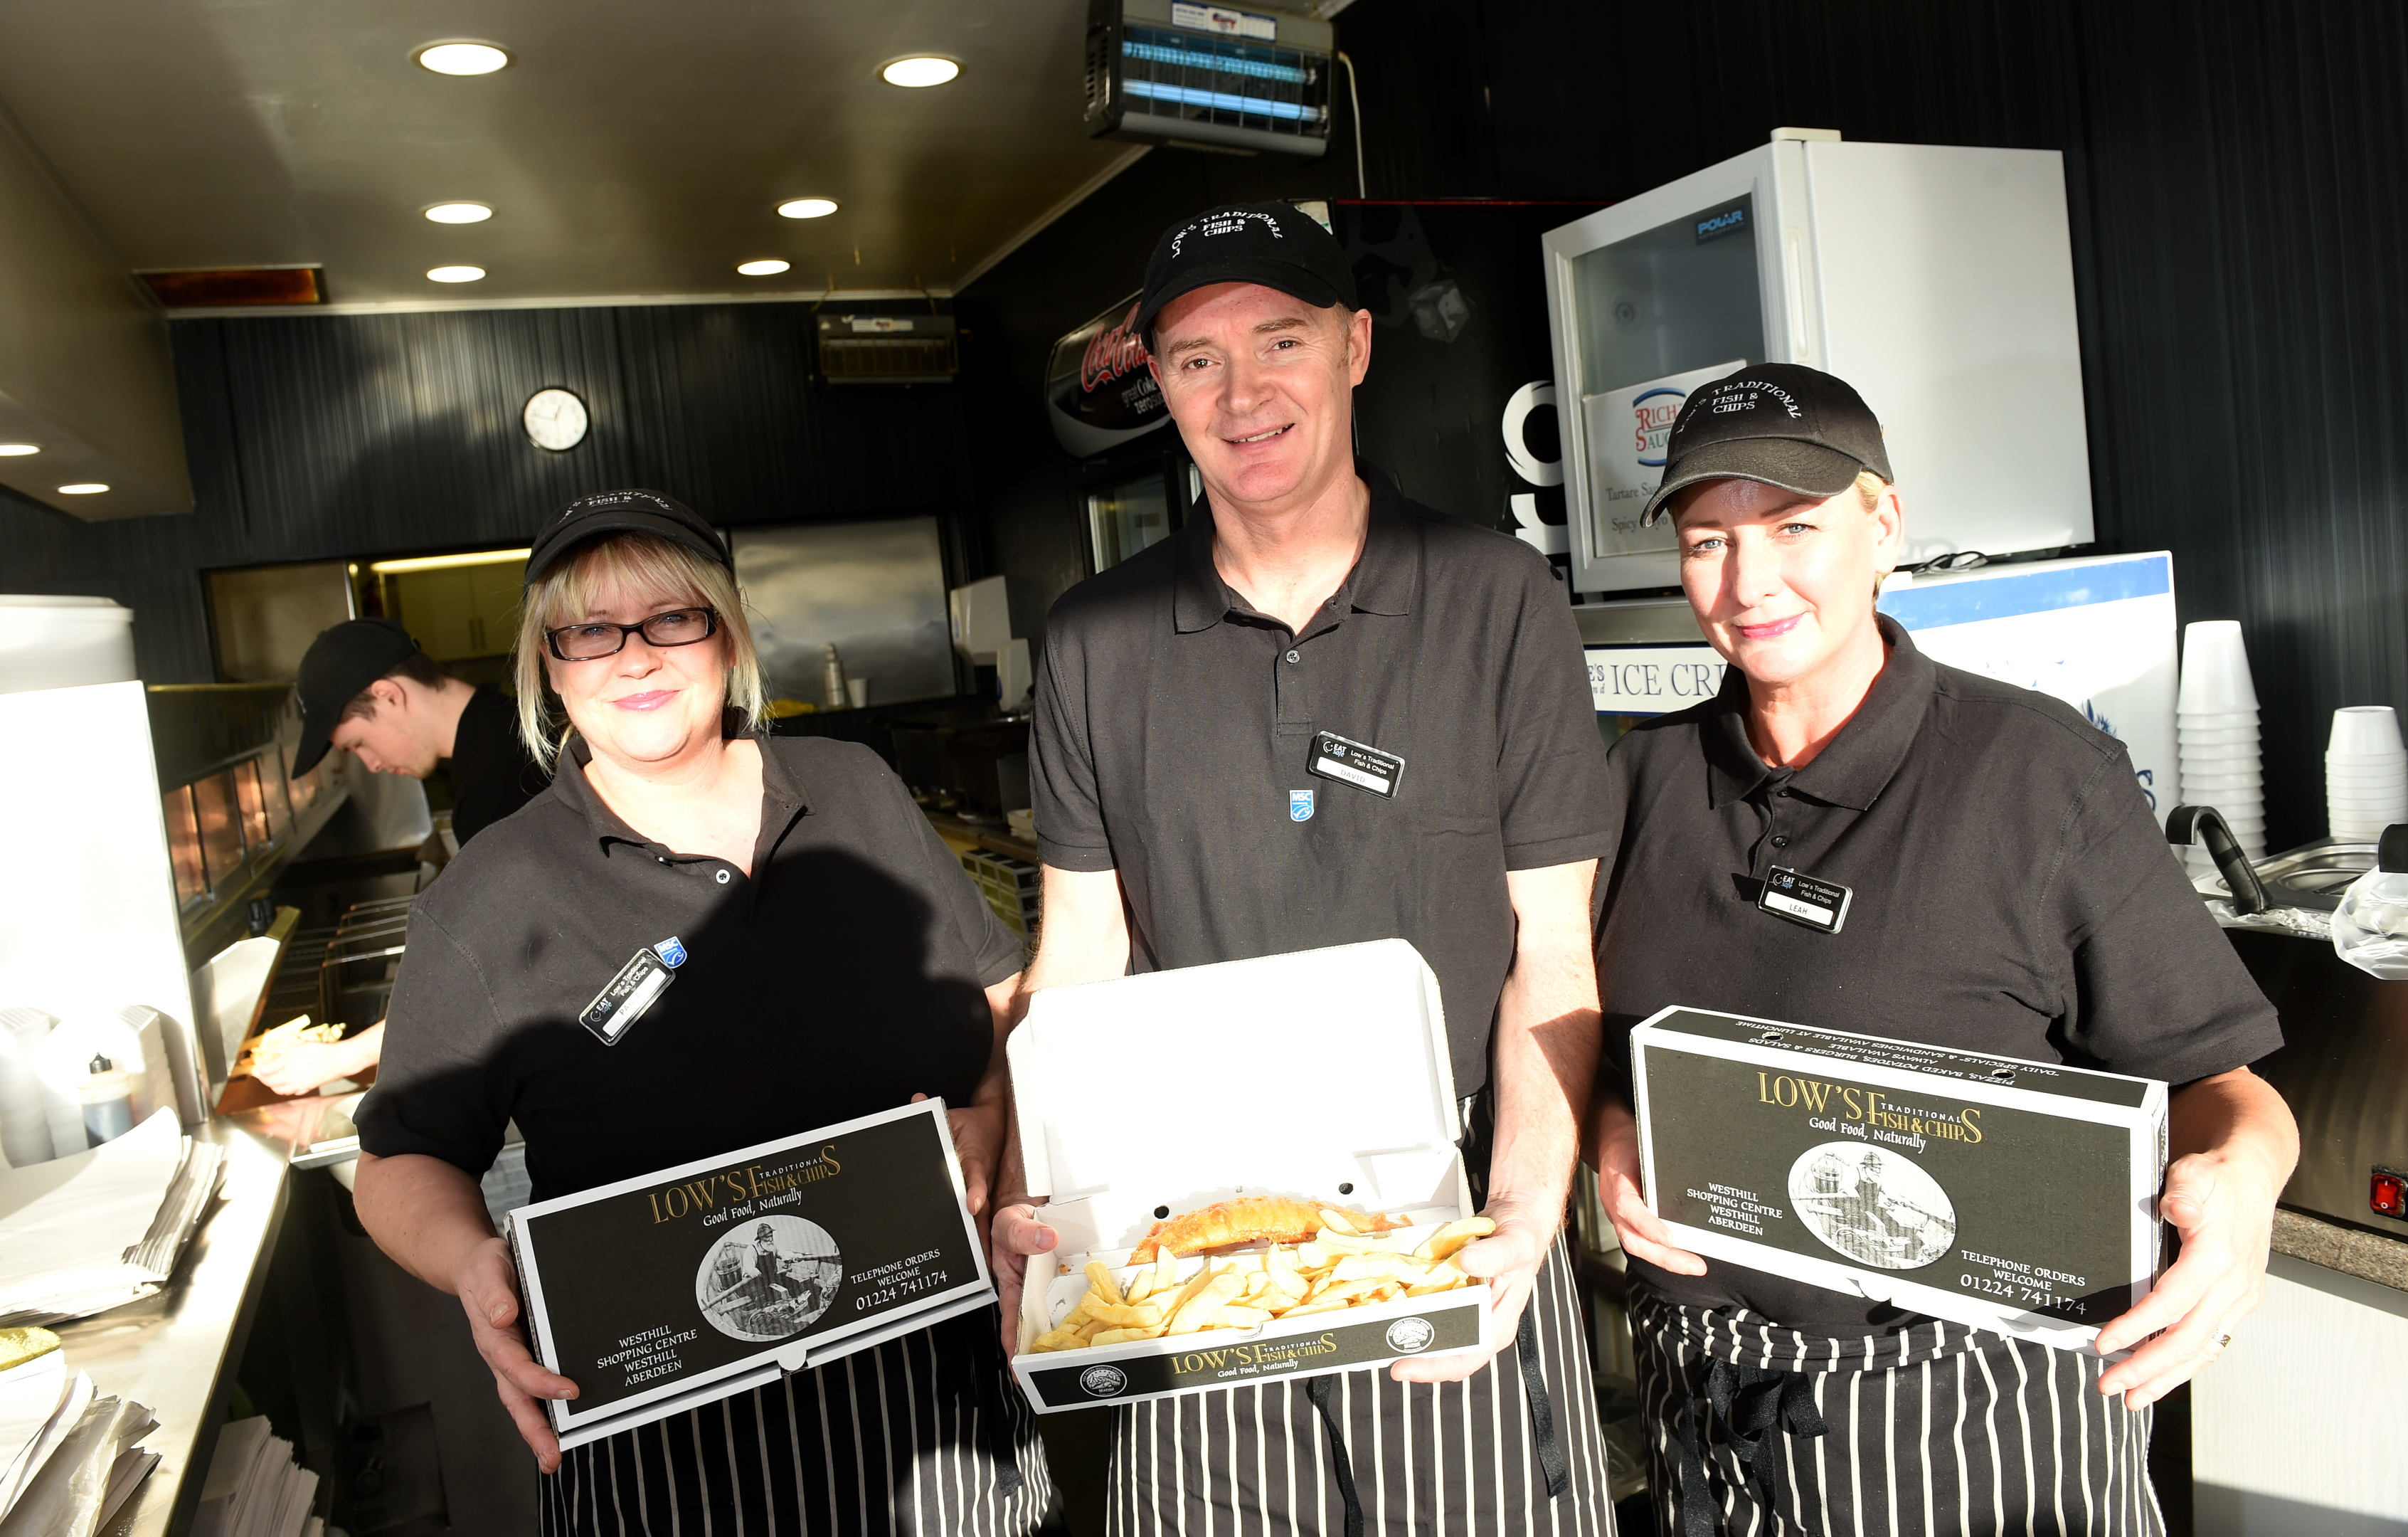 From left, Paula Low, David Low and Leah Adie at Lows Traditional Fish and Chips.